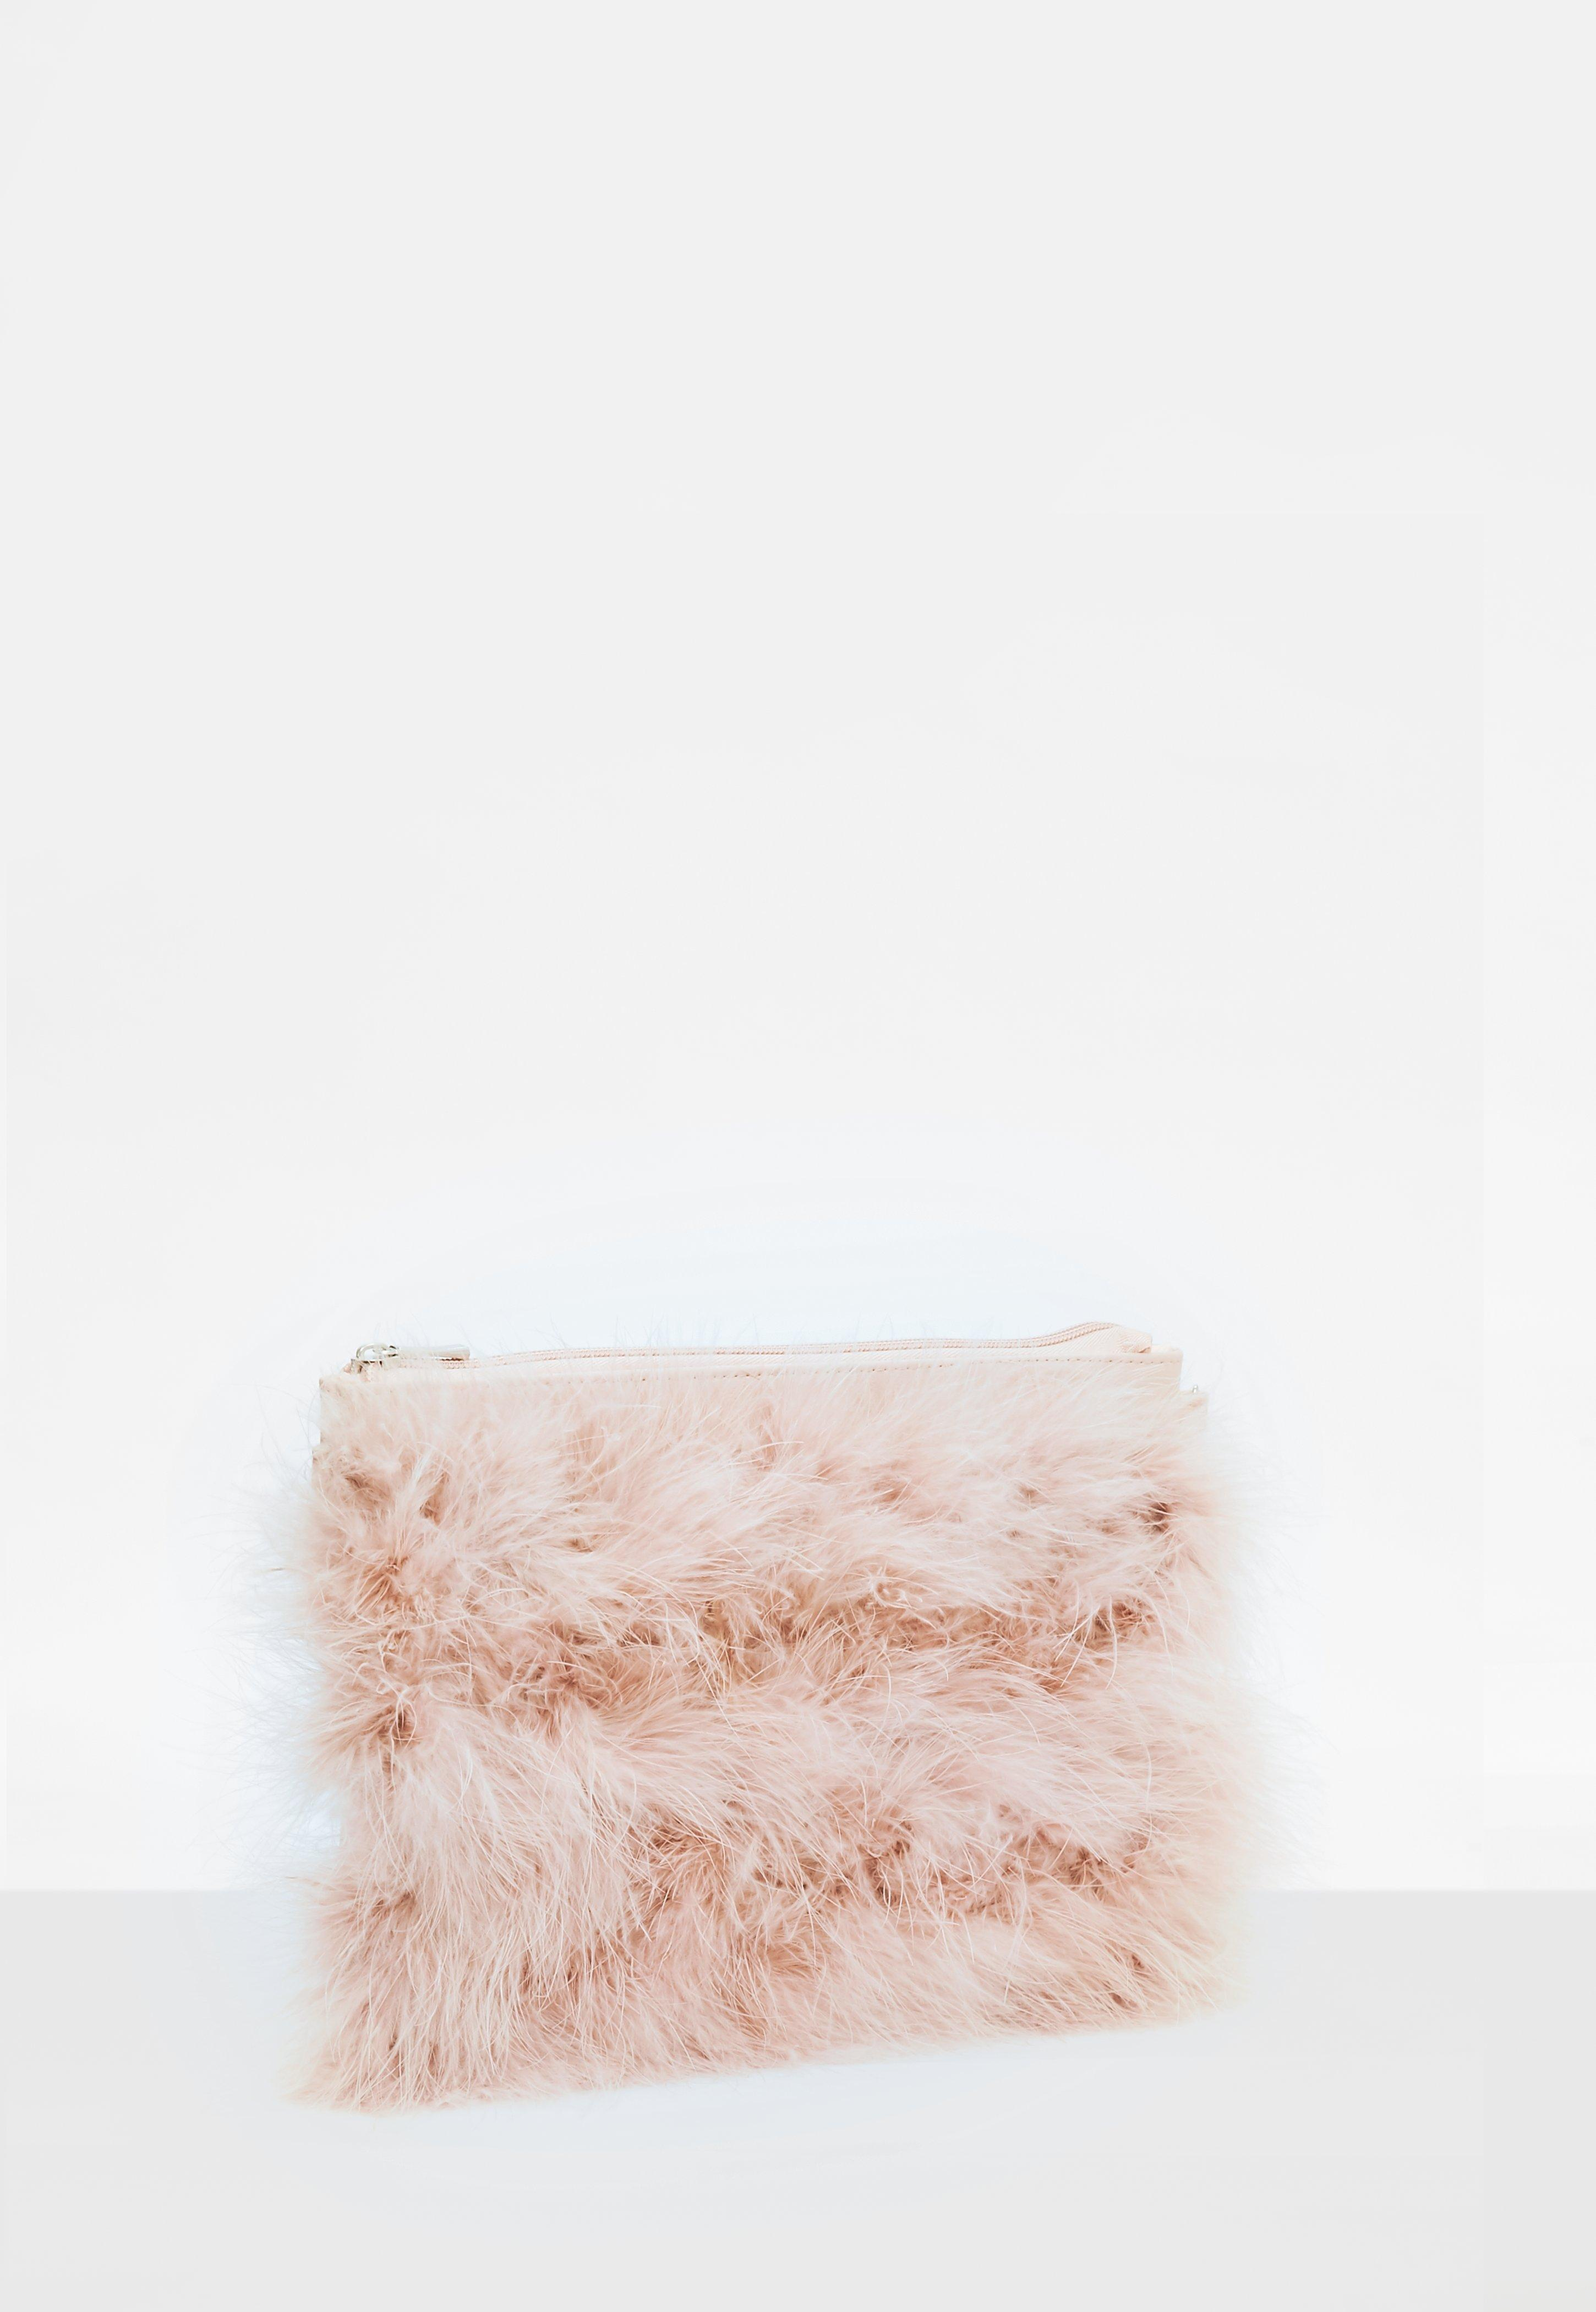 Lyst - Missguided Nude Feather Clutch Bag in Natural 5df79d2e68